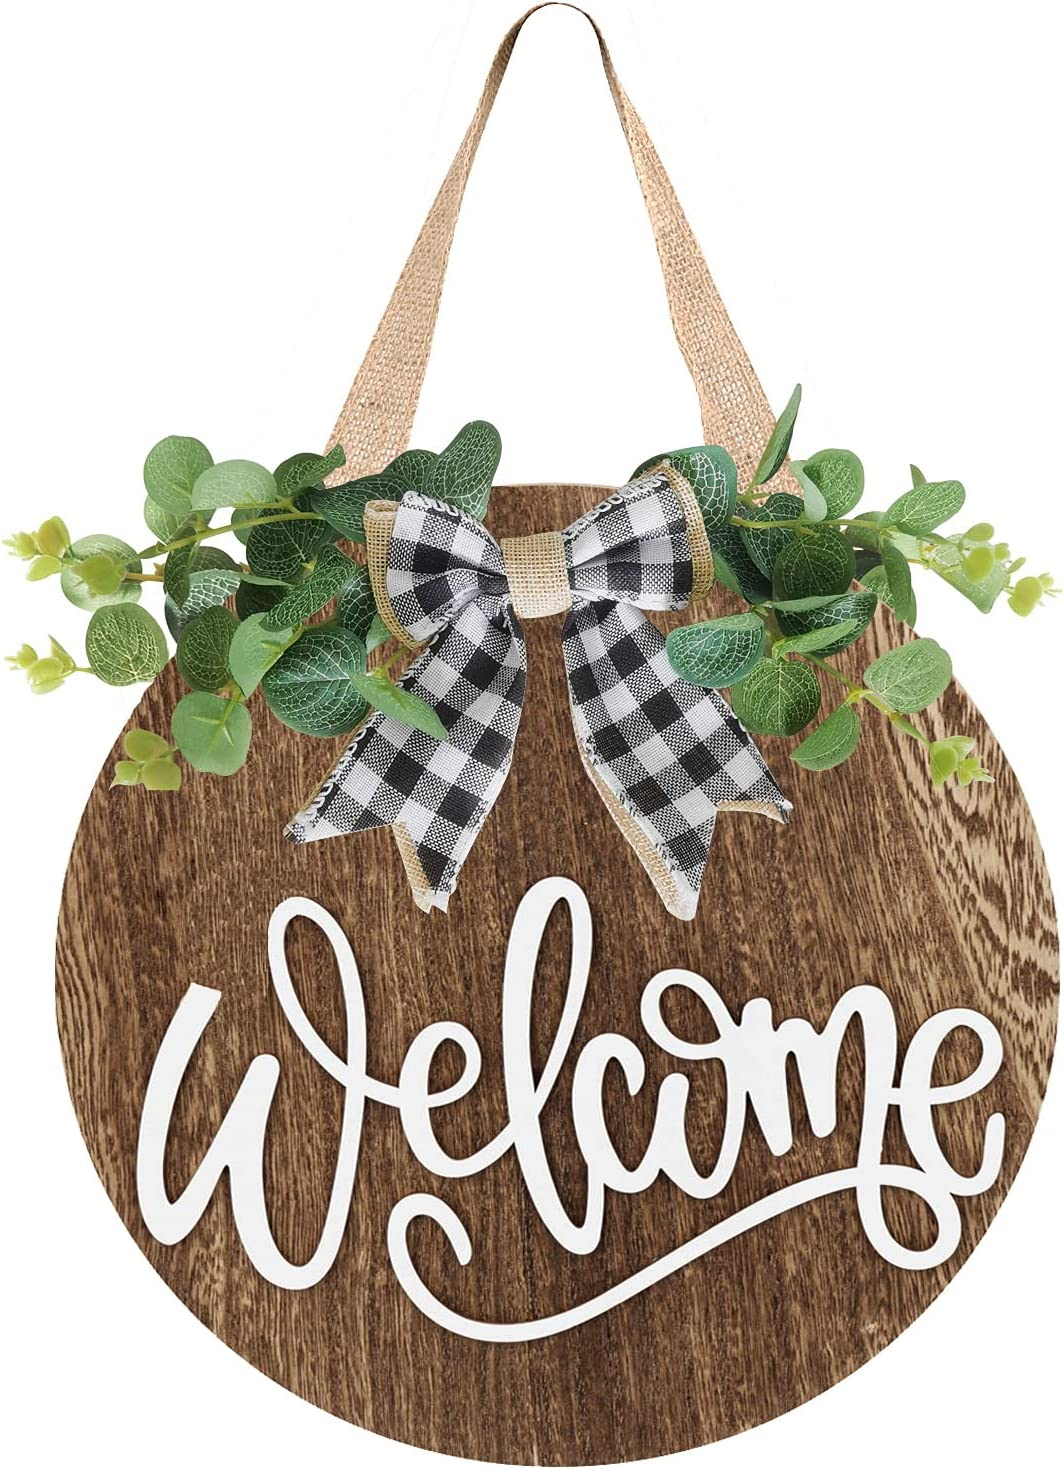 Welcome Sign for Front Door - Welcome Wreaths for Rustic Farmhouse Decorations - Wood Front Door Hangers Decor Front Porch Decorations Outdoor Hanging Sign Farmhouse Sign Brown